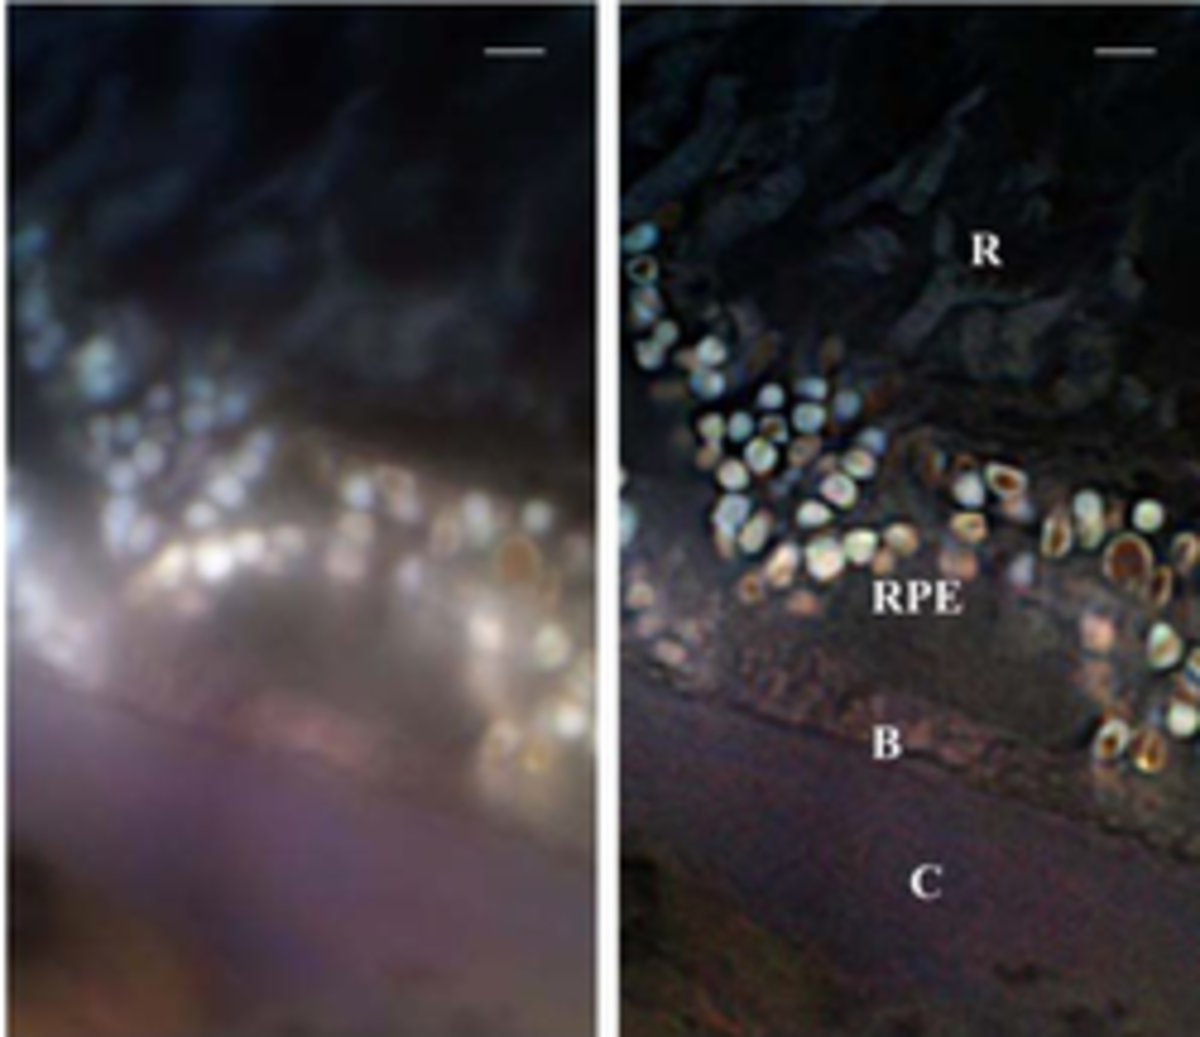 Microscopic view of effect of Macular Degeneration.